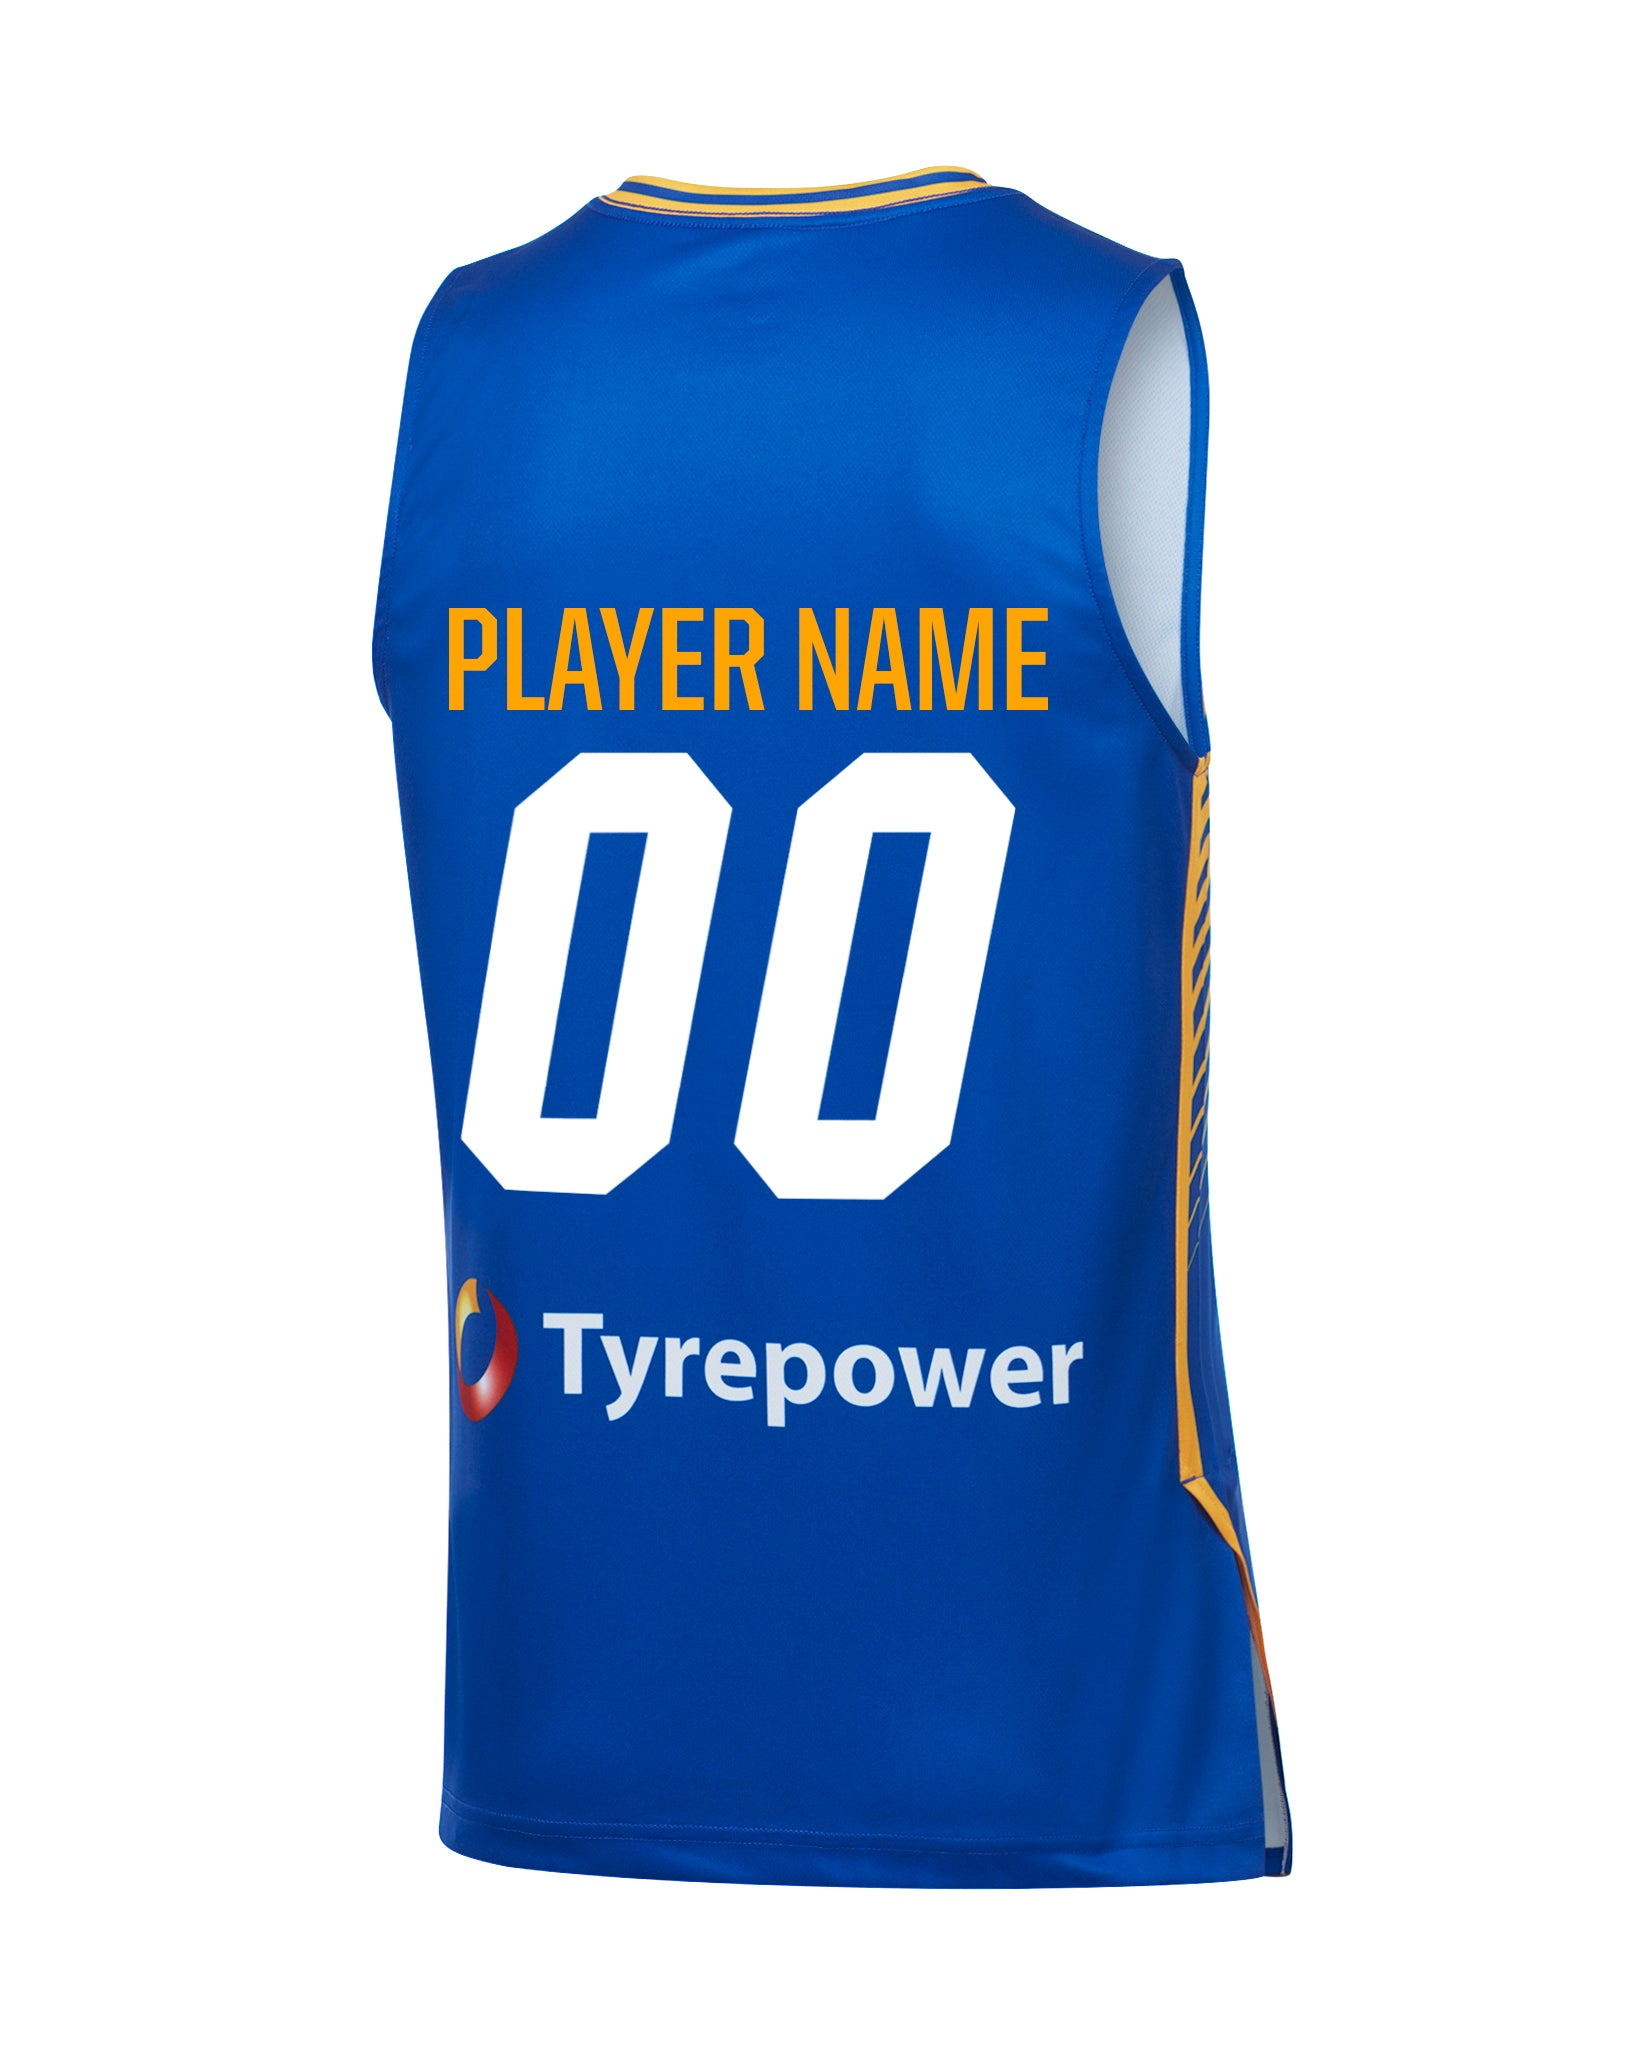 Brisbane Bullets 19/20 Authentic Home Jersey - Other Players